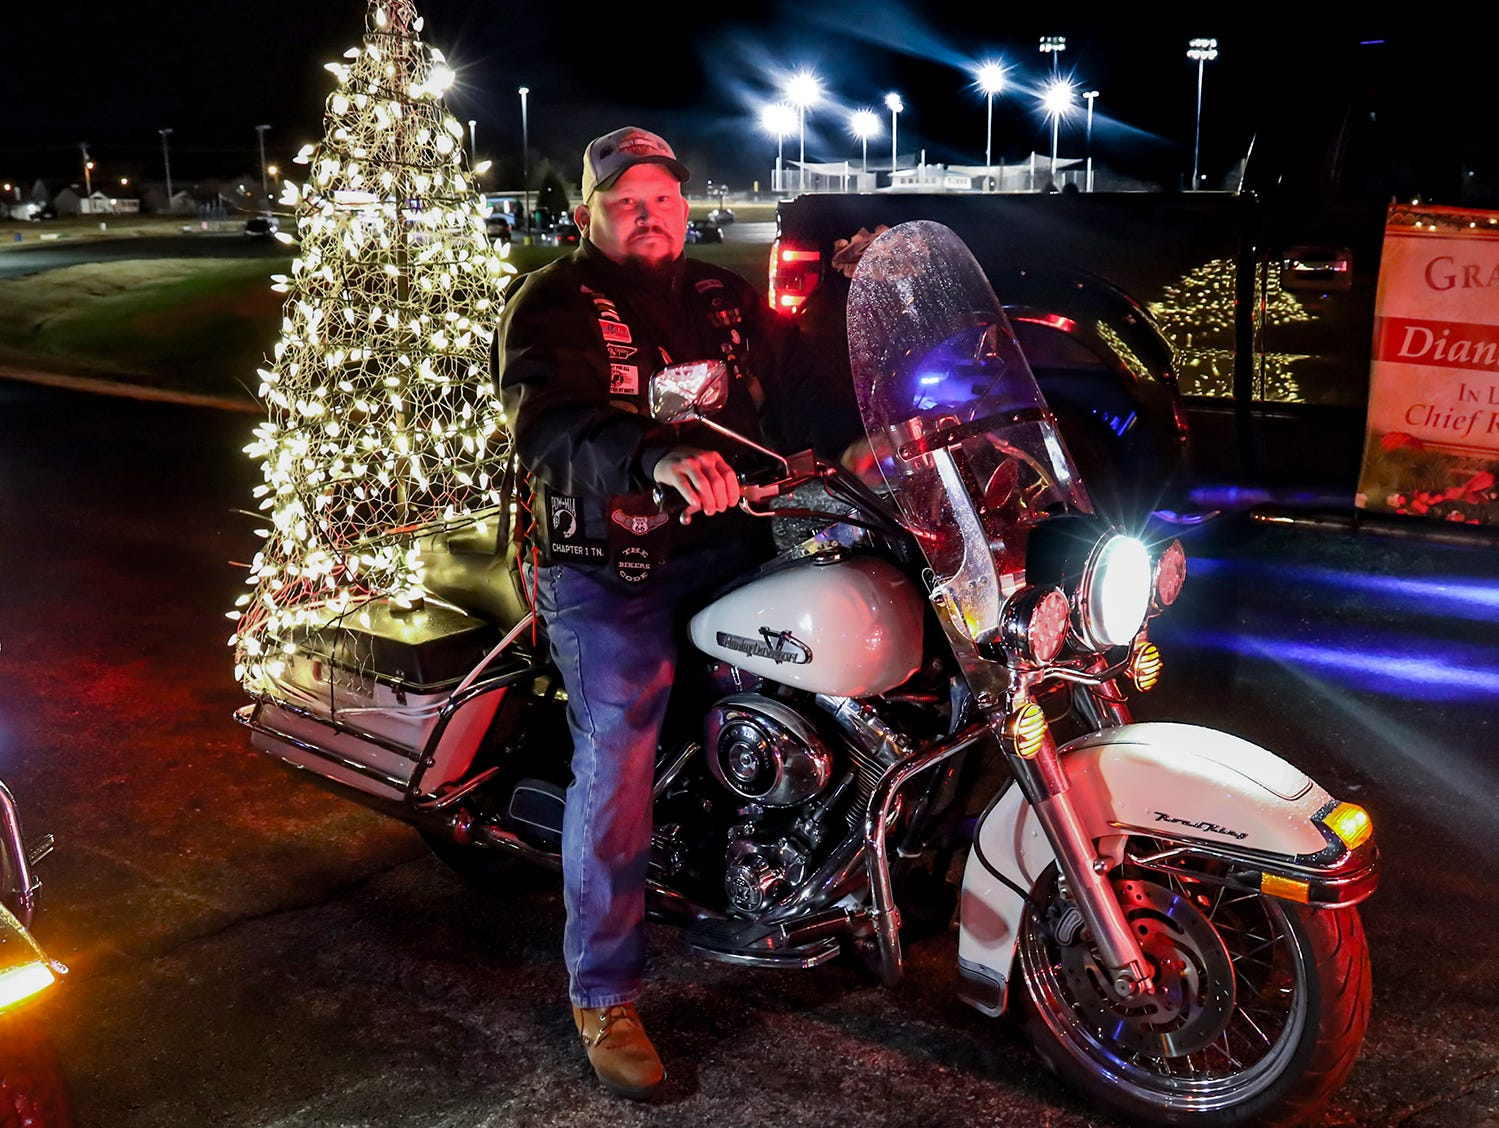 La Vergne's 2018 Christmas Parade of Lights was held Saturday, Dec. 1, 2018.